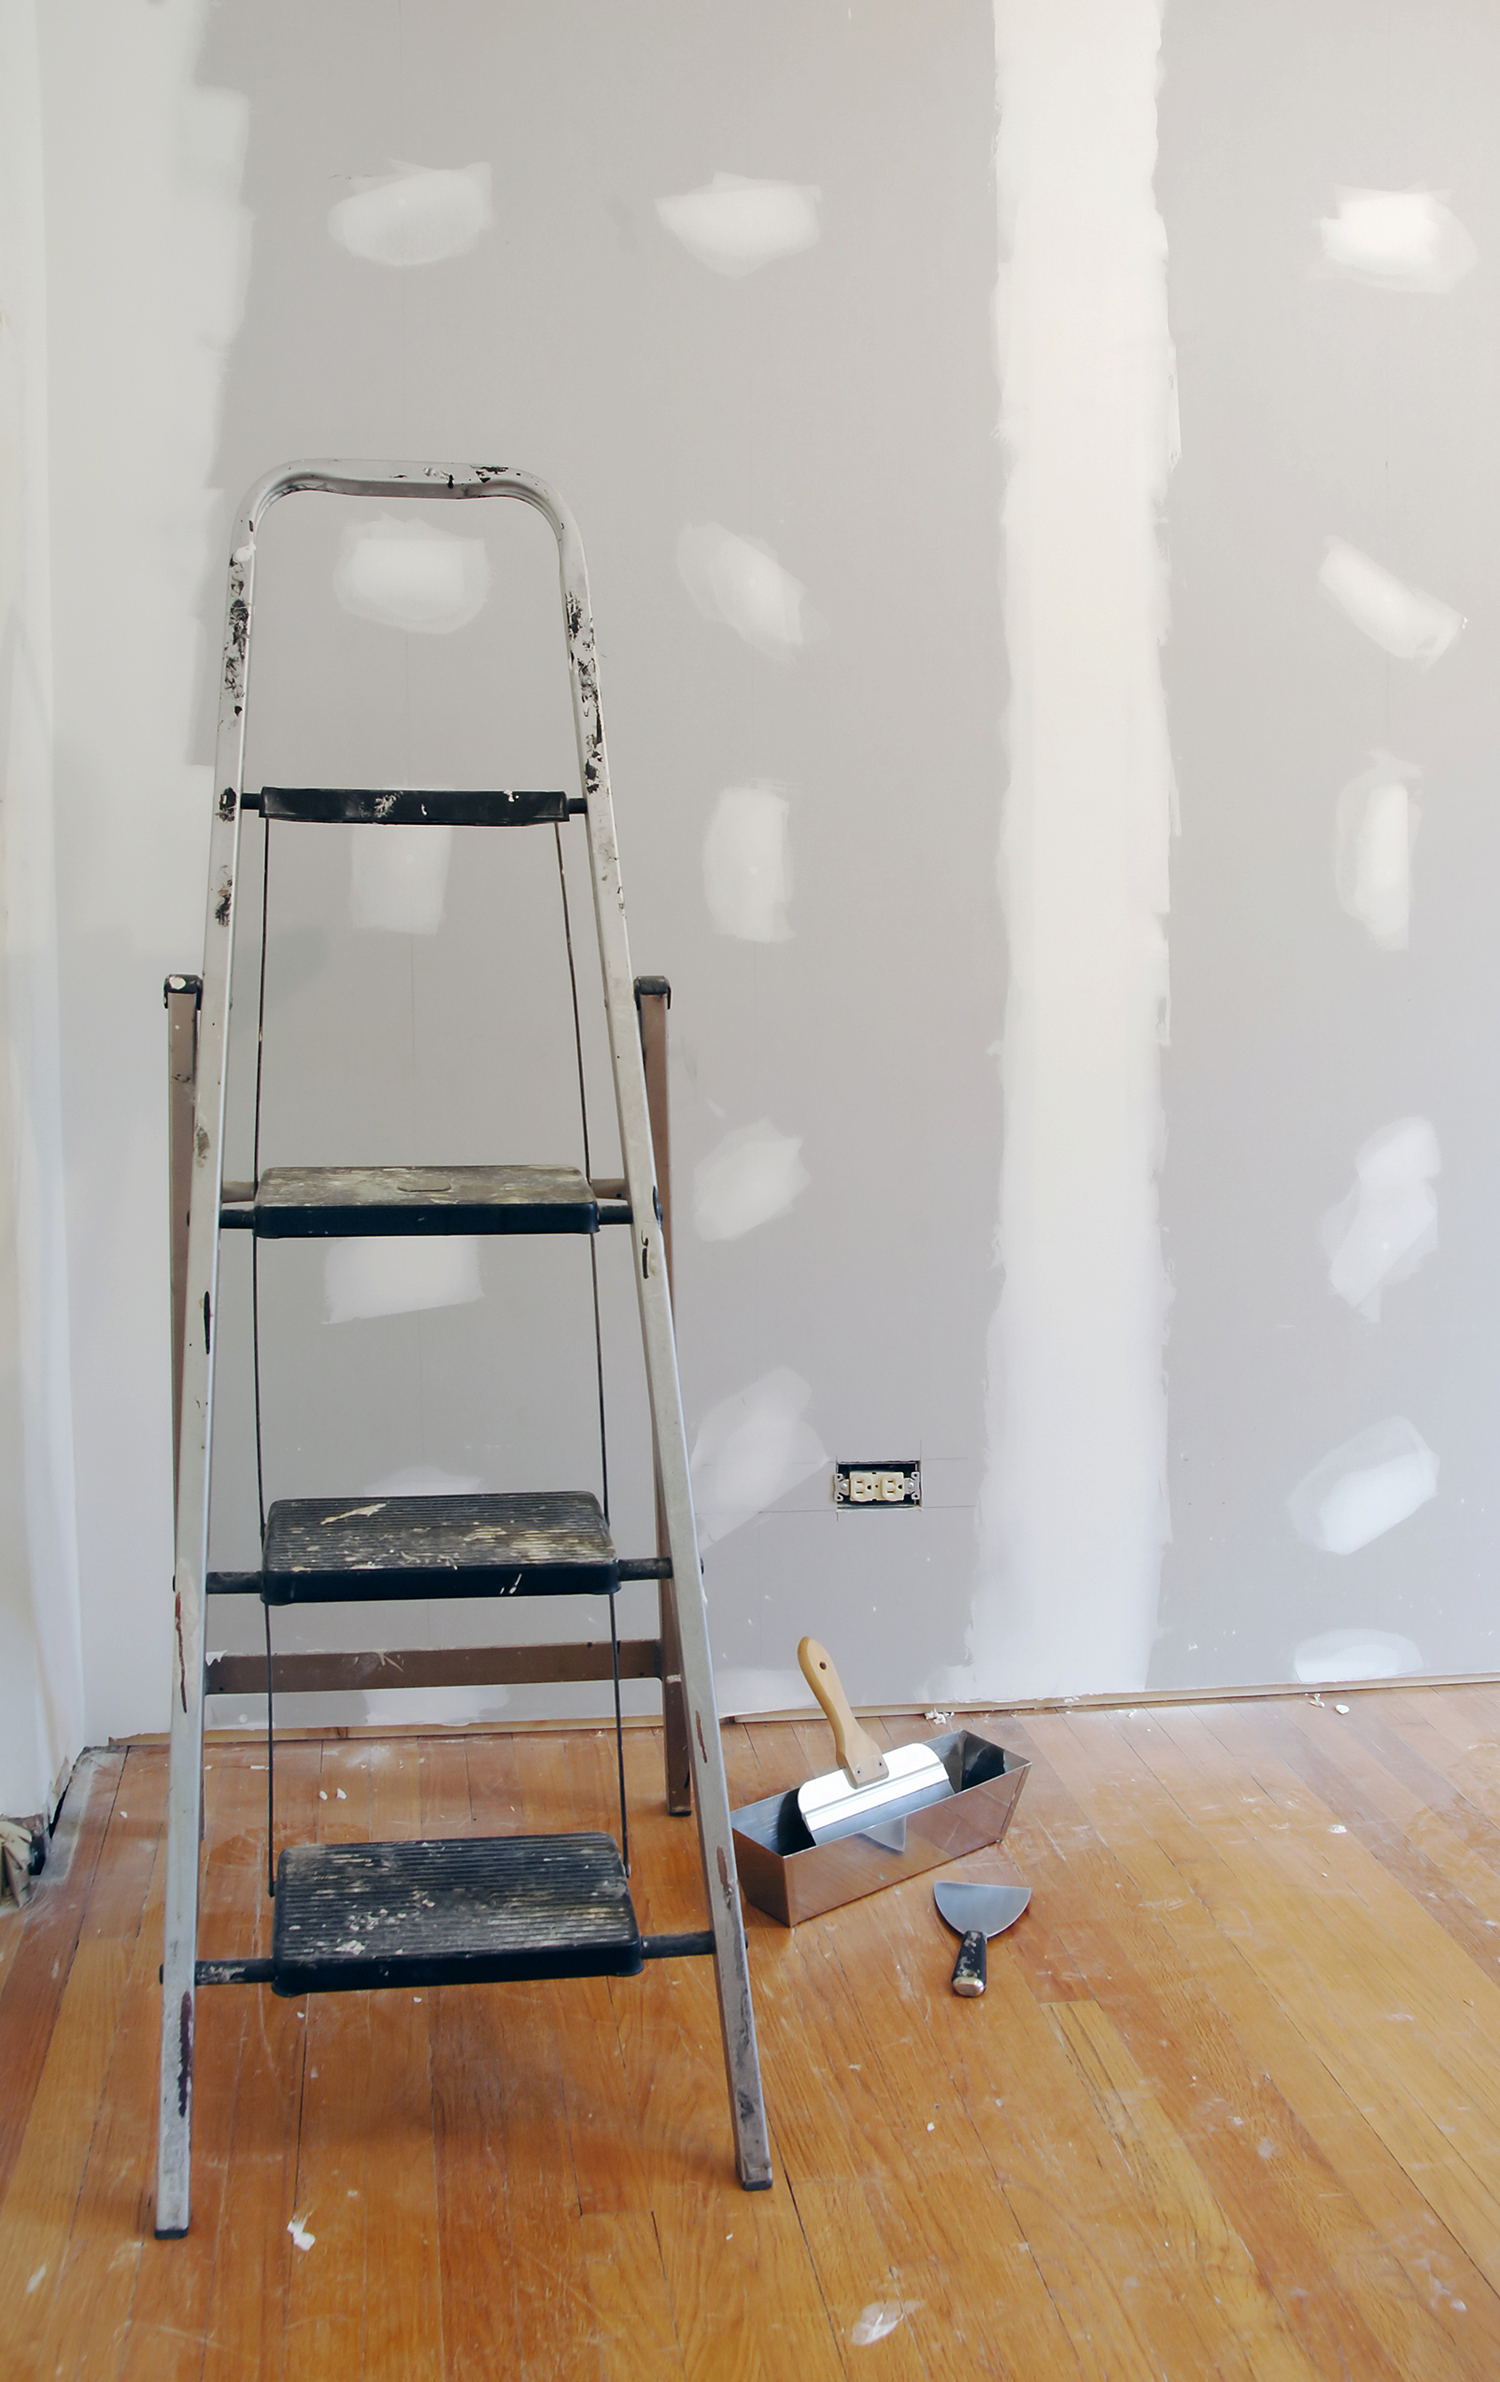 Long beach ca painting quality a to z home improvements for A to z home improvements